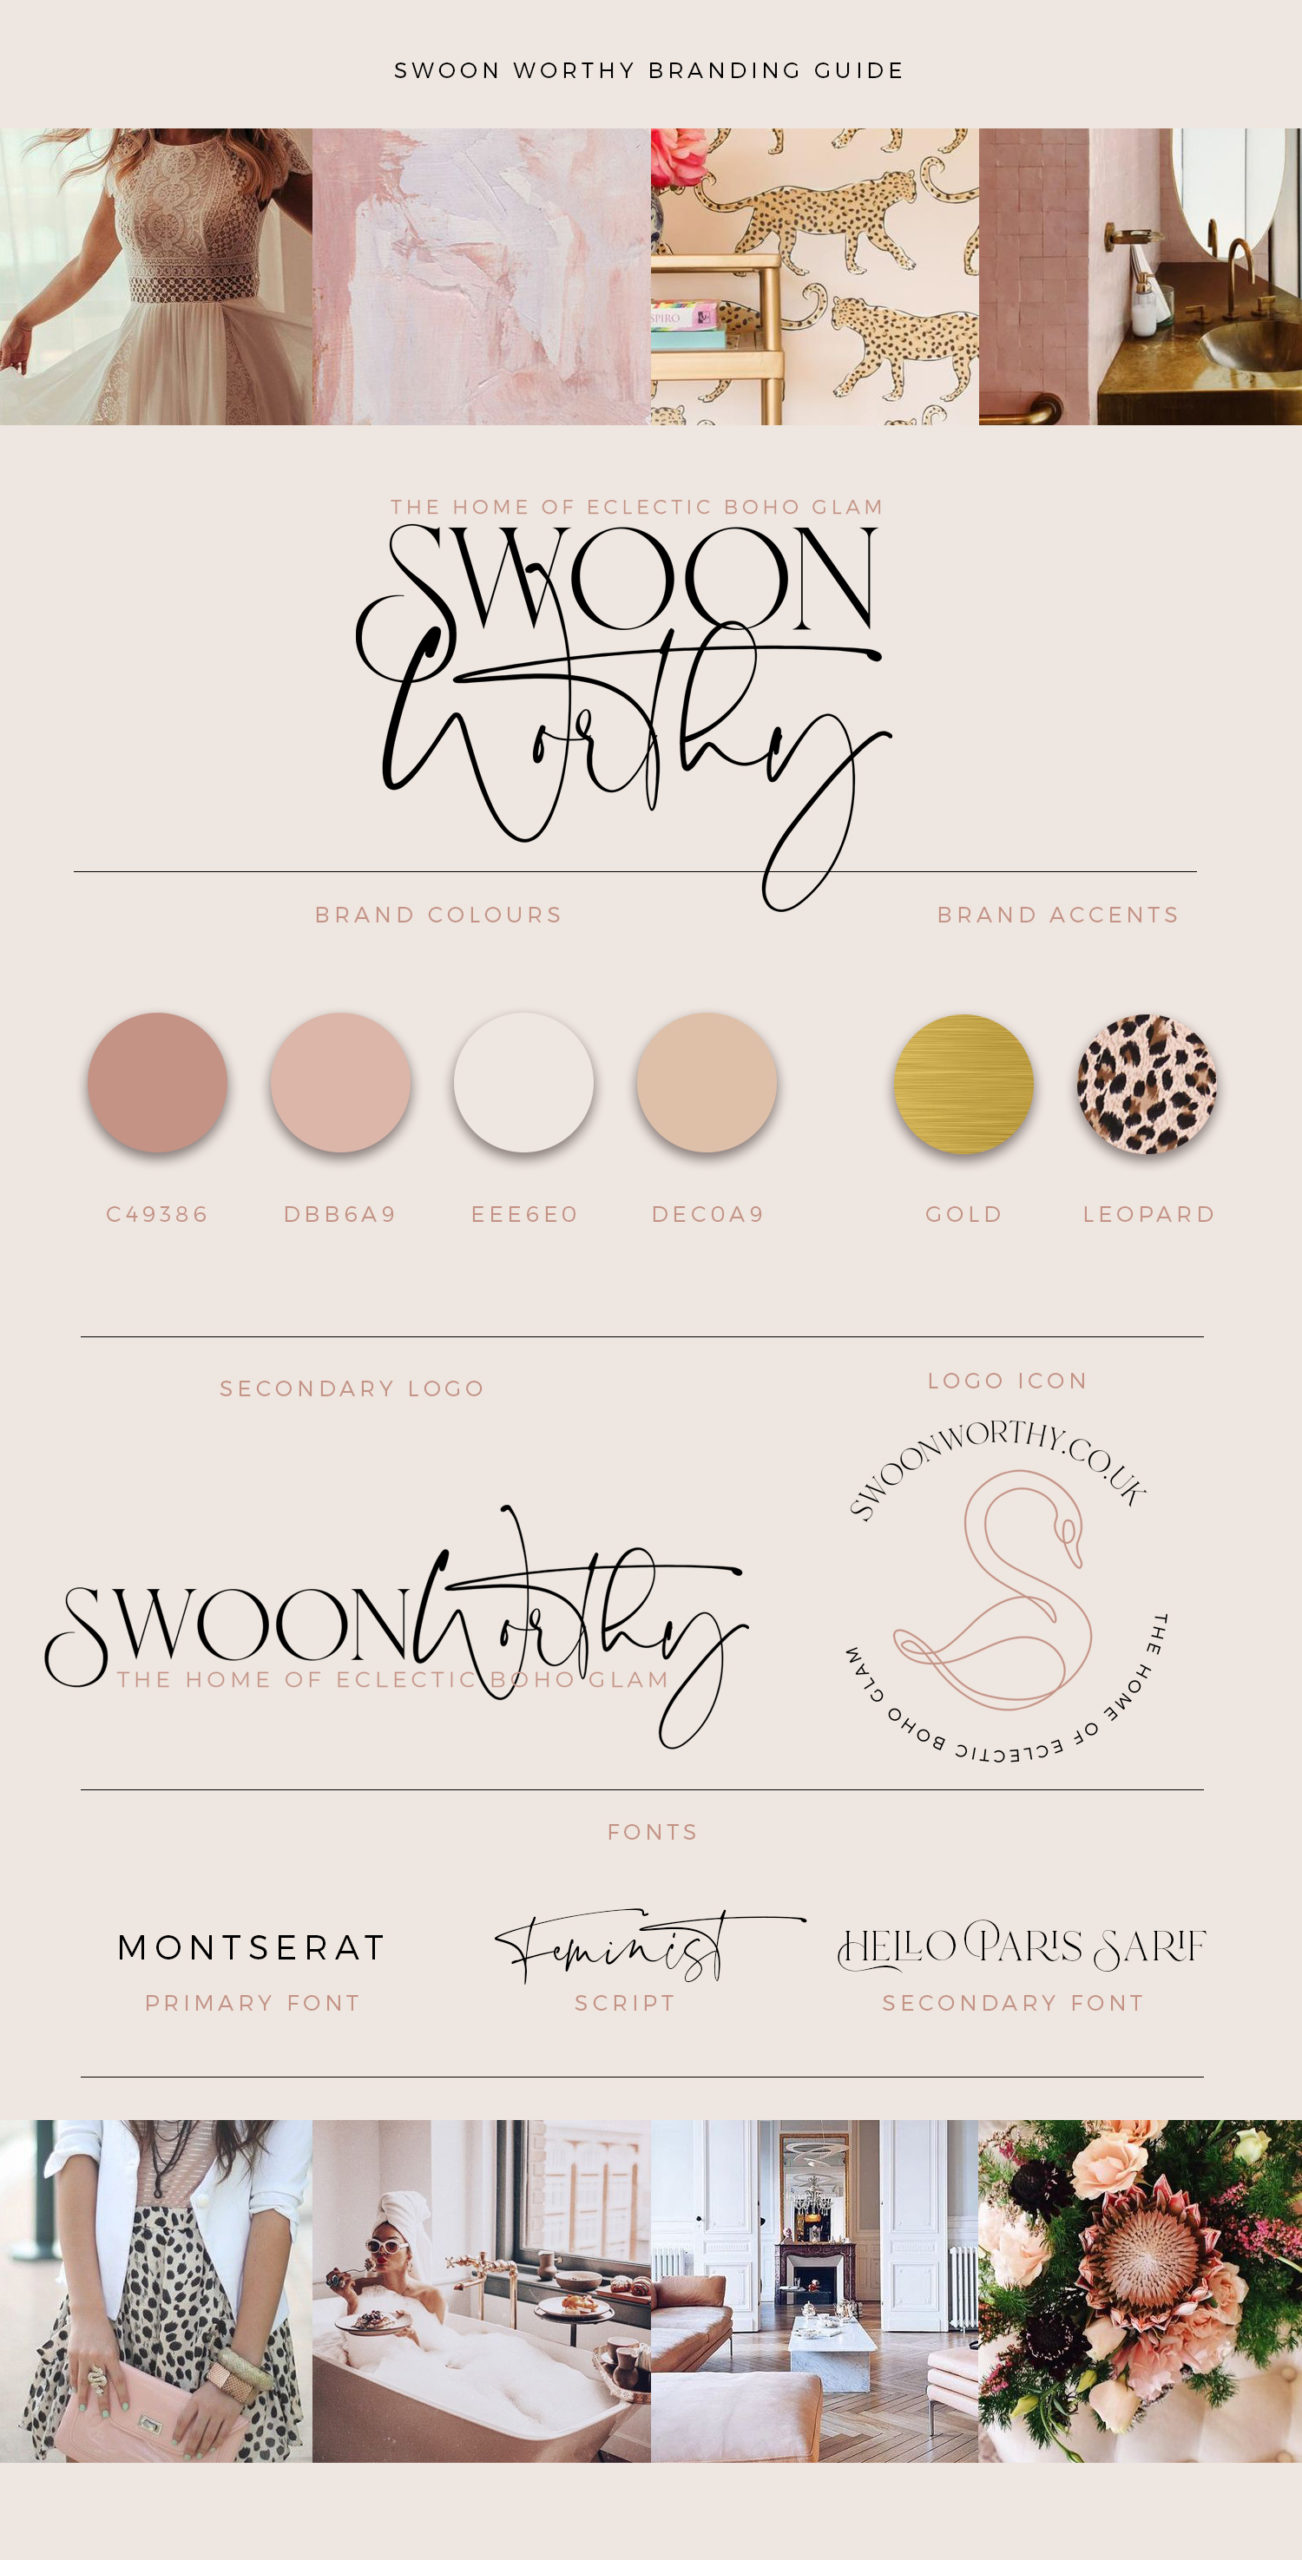 Swoon Worthy Branding Guide